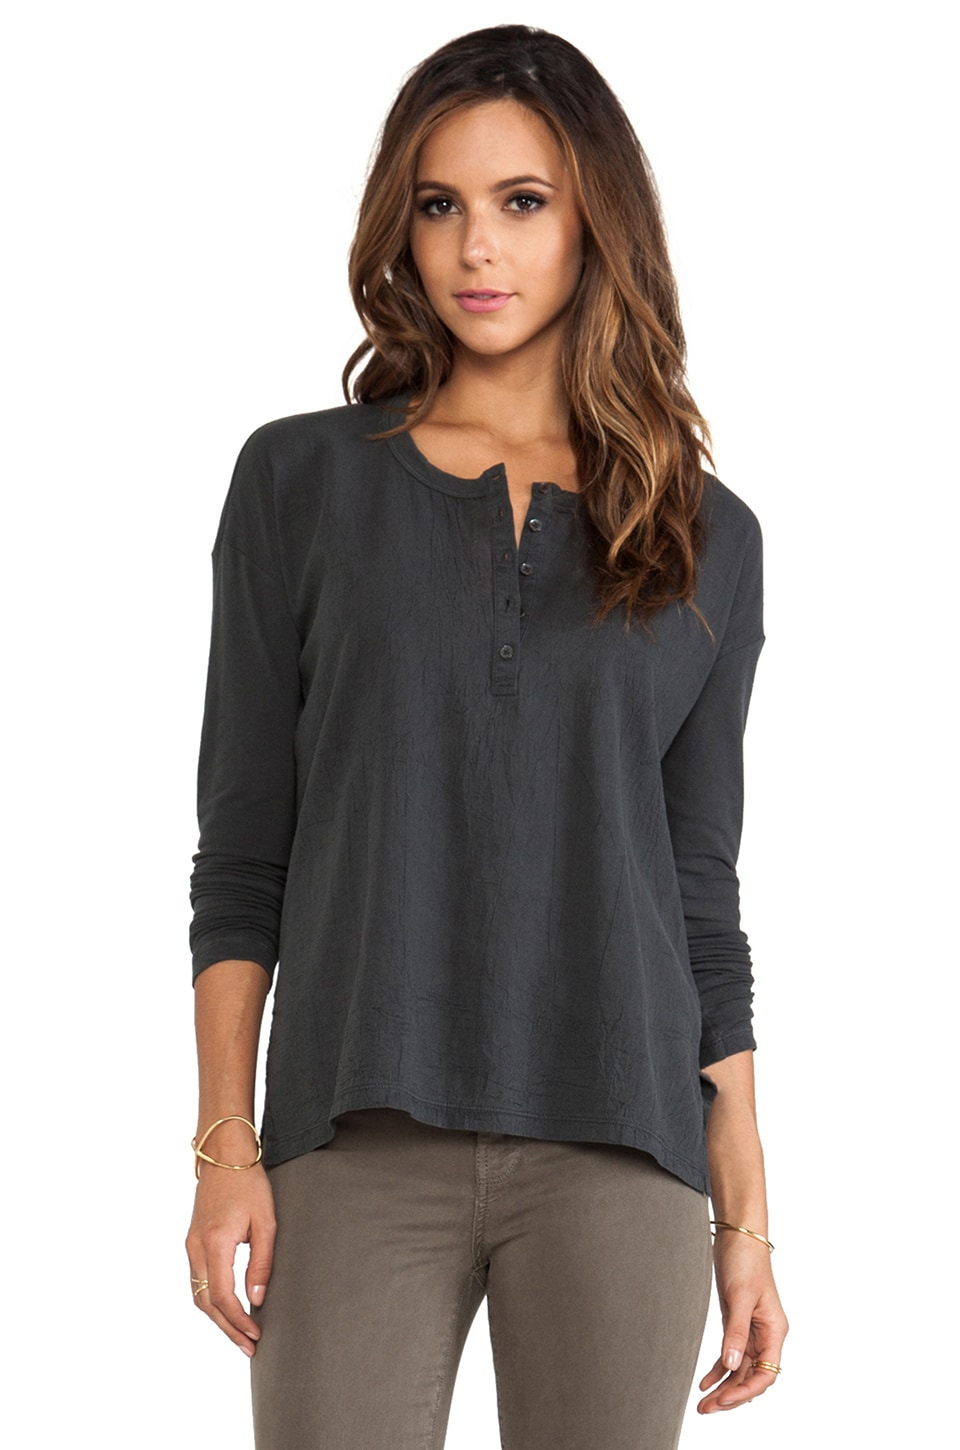 James Perse Boxy Collage Henley in Carbon